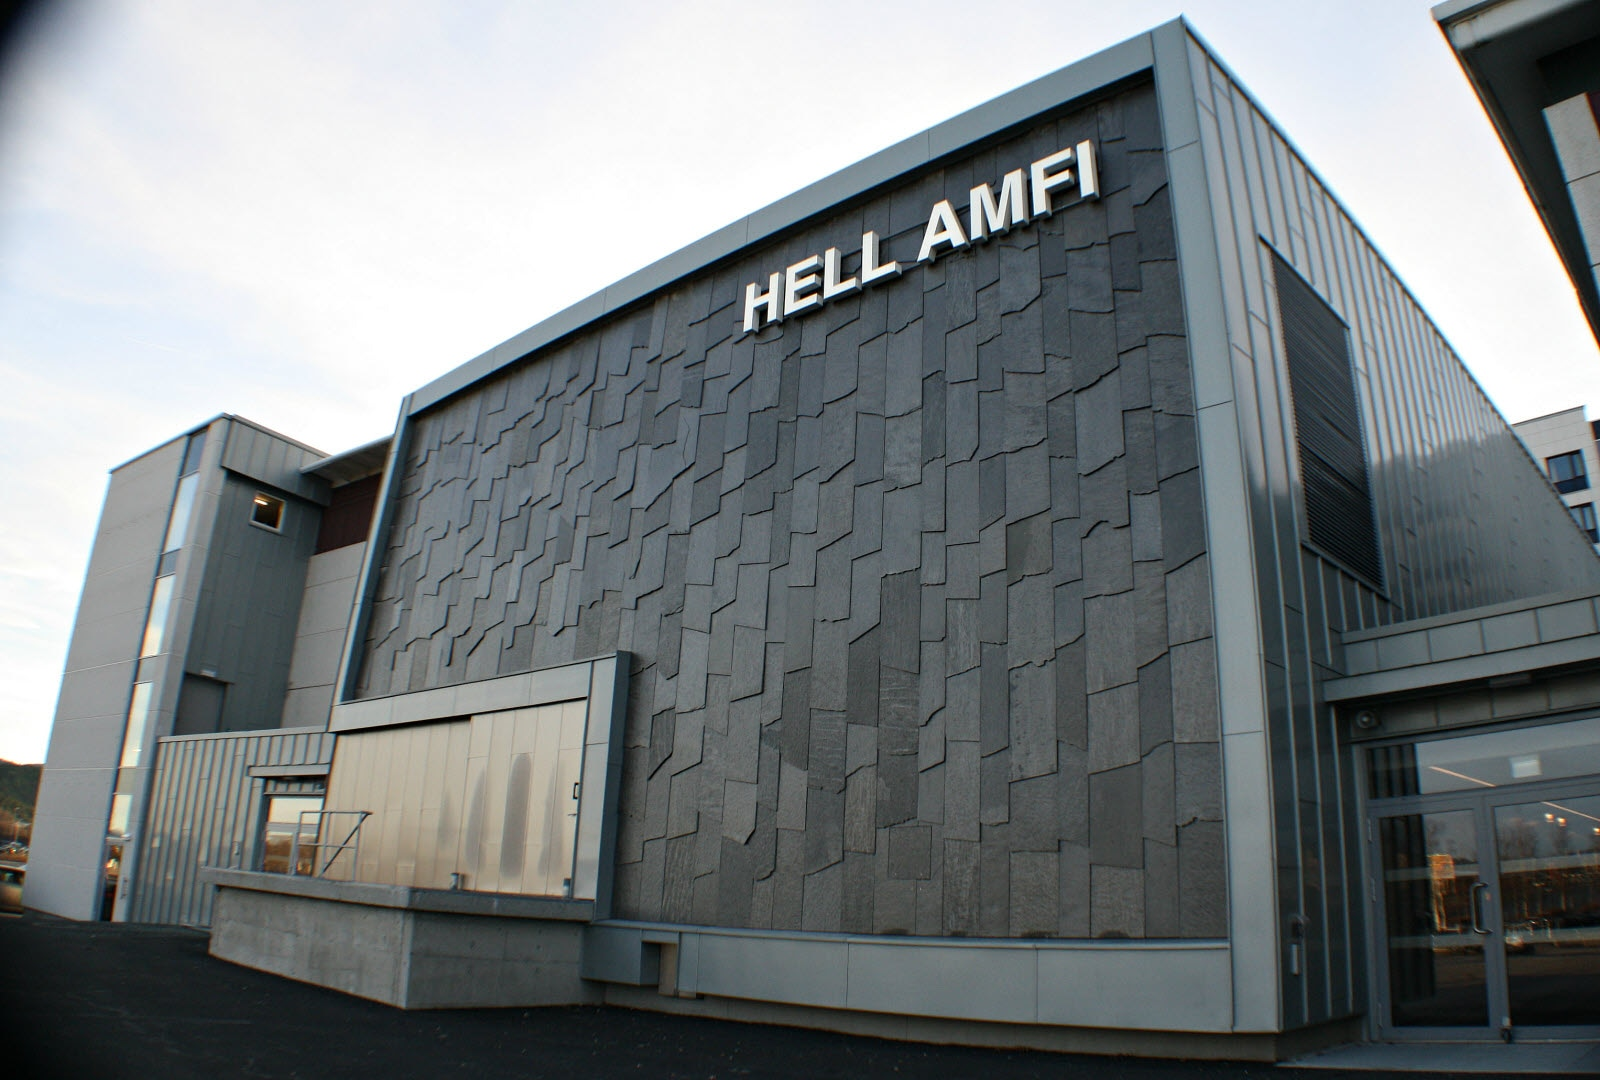 Scandic Hell, Vaernes, Amfi, conference centre